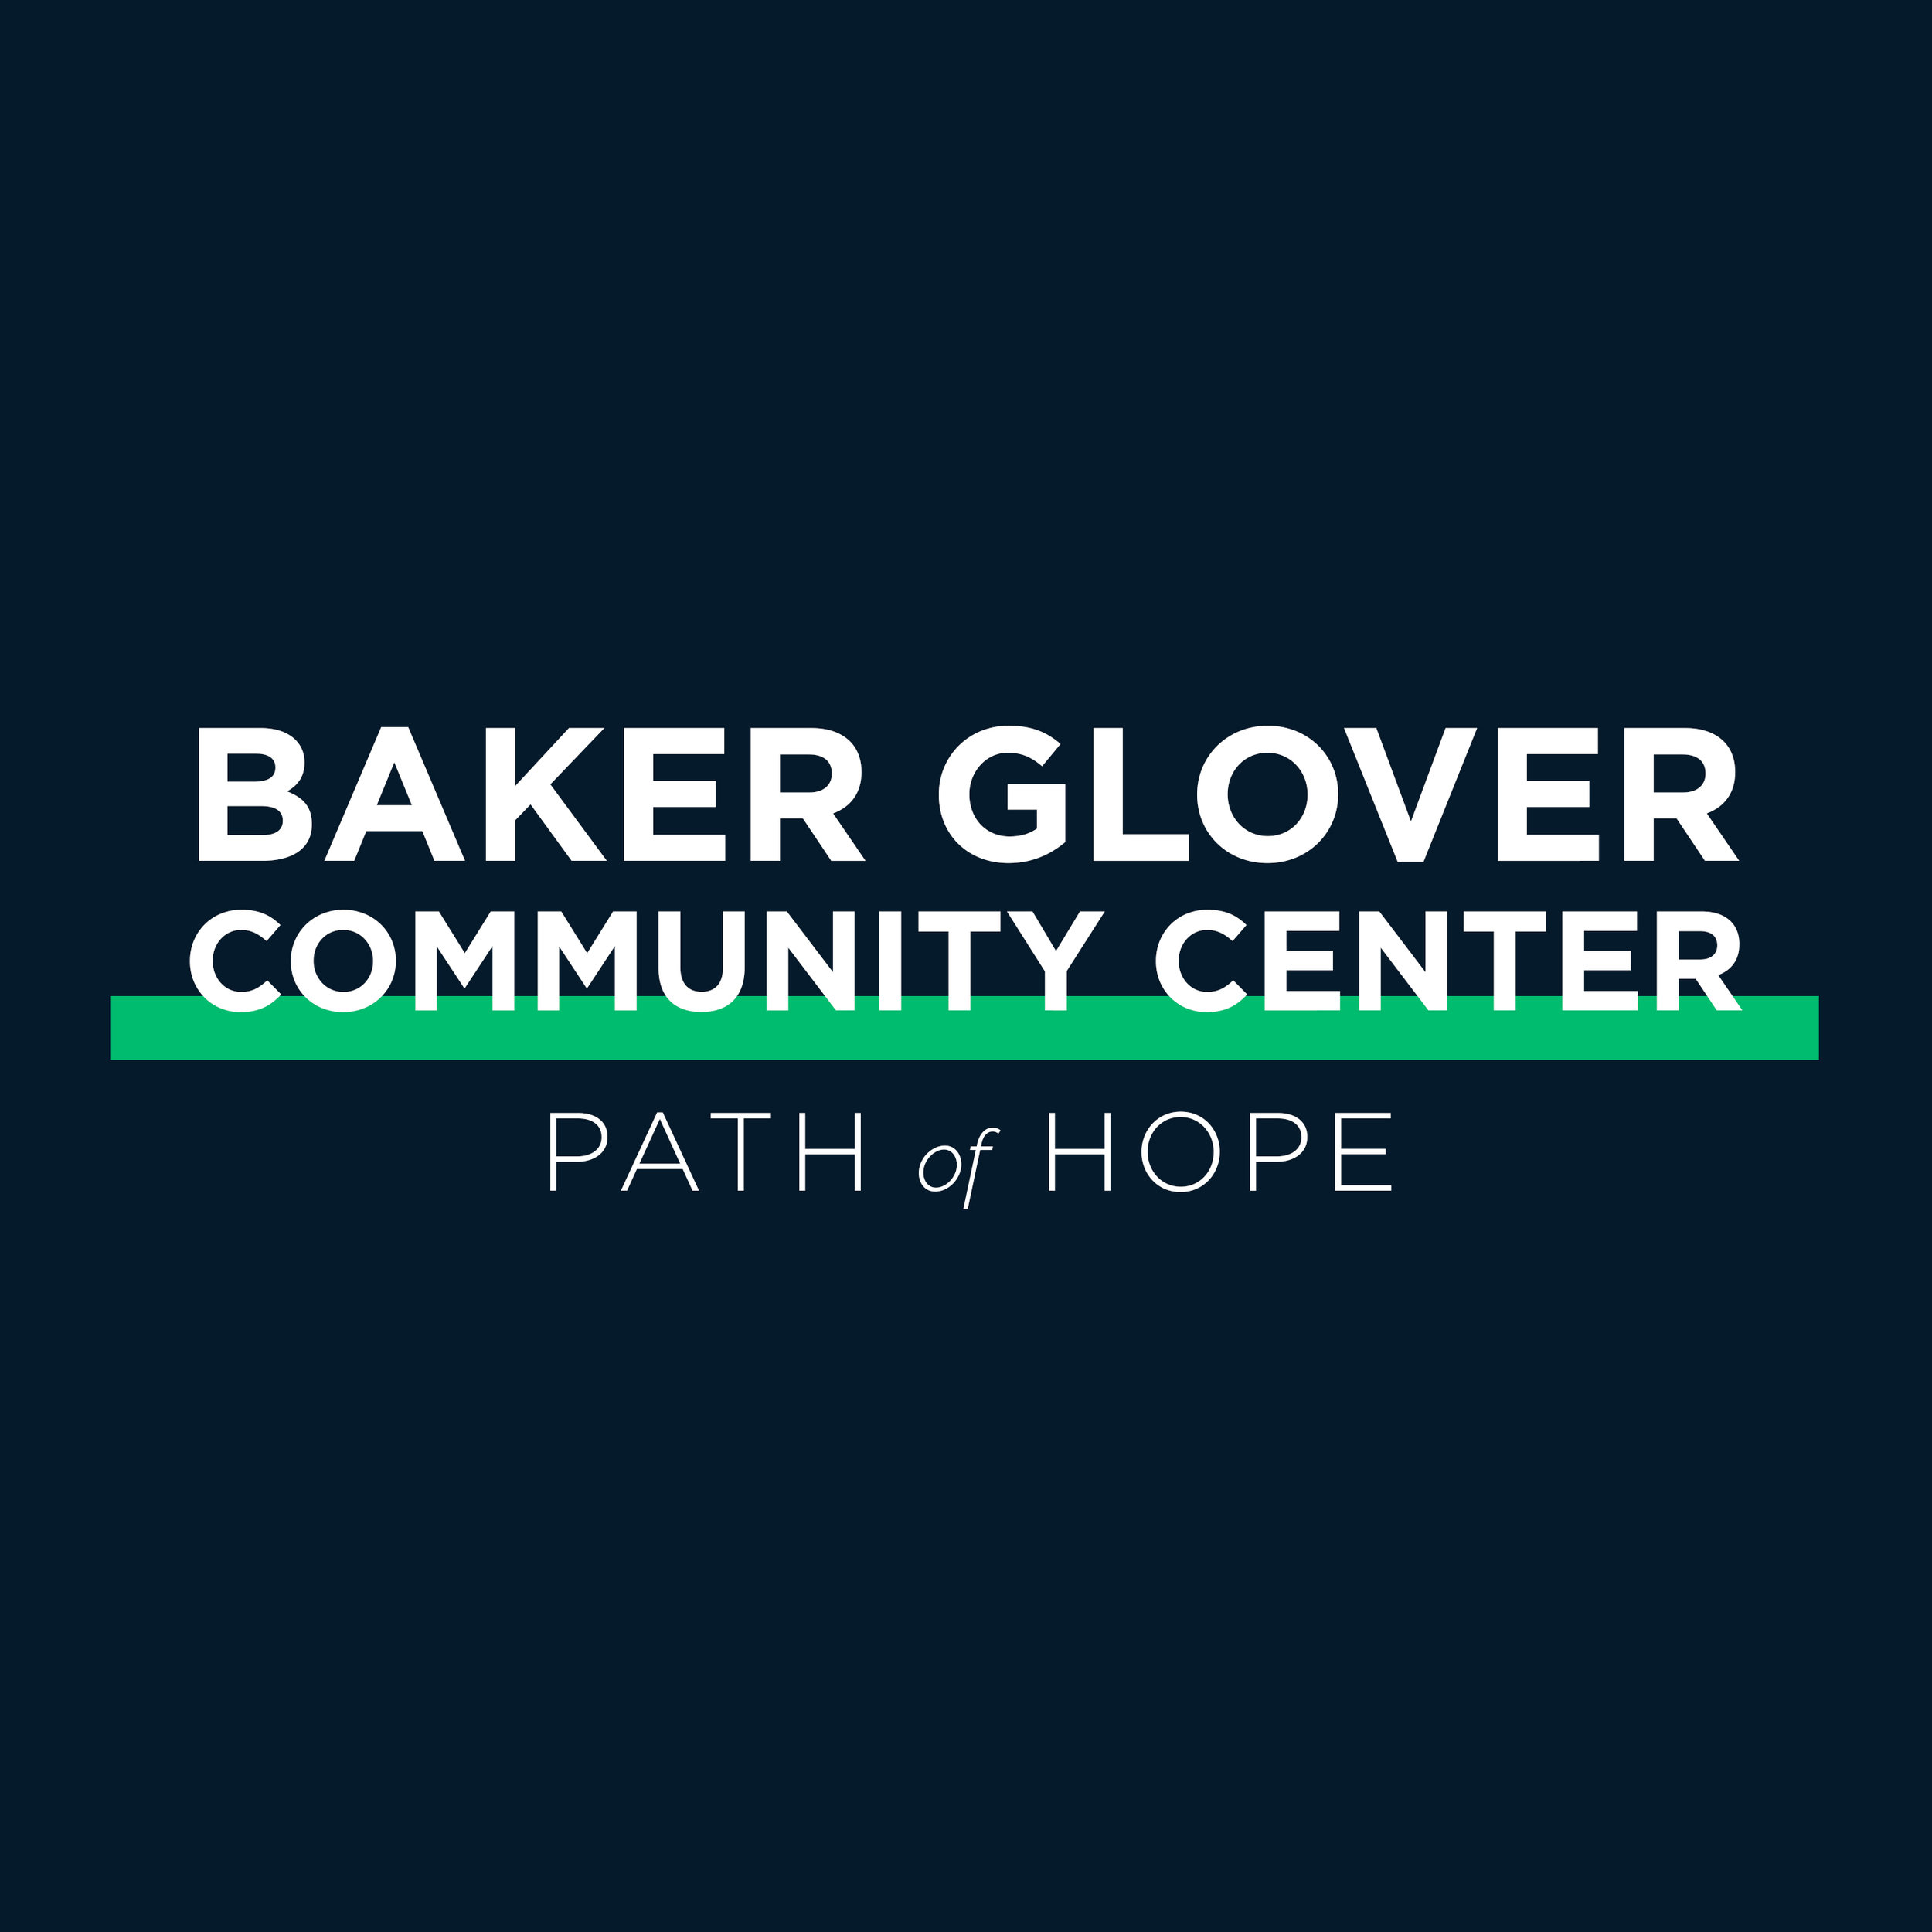 square_baker_glover_community_center.jpg